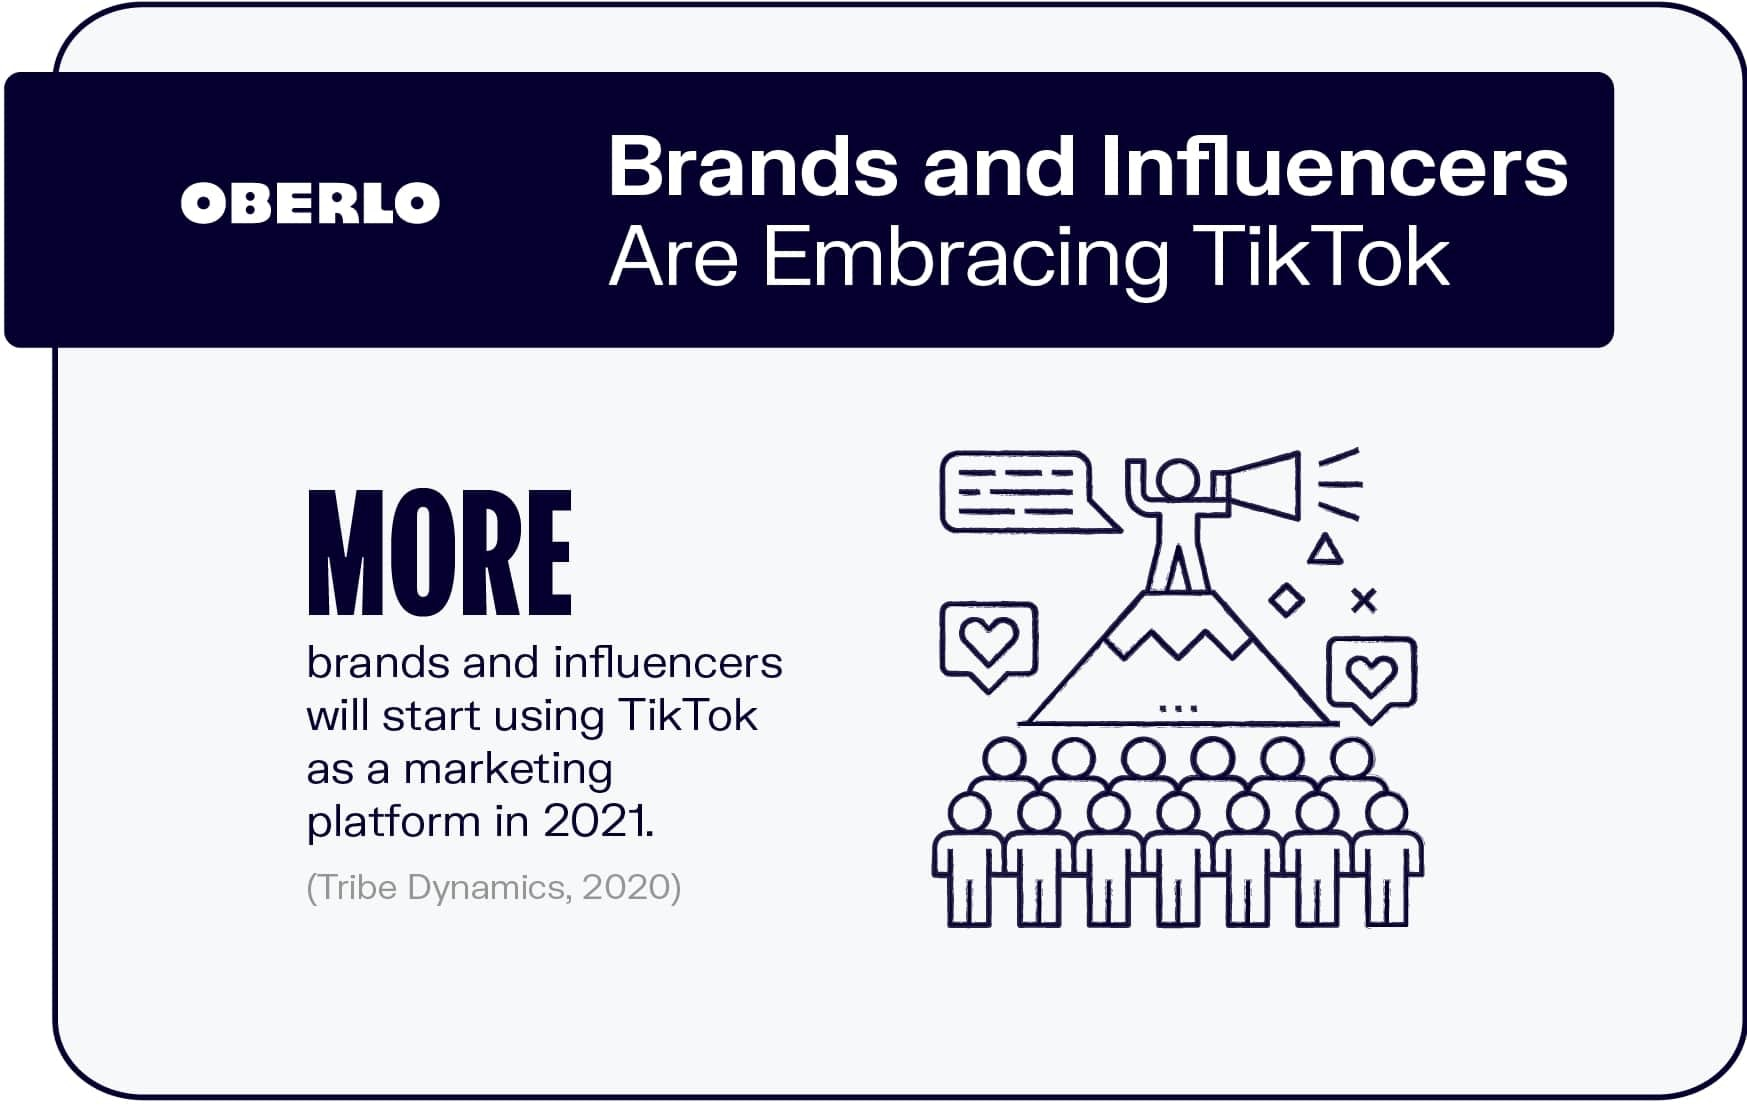 Brands and Influencers Are Embracing TikTok